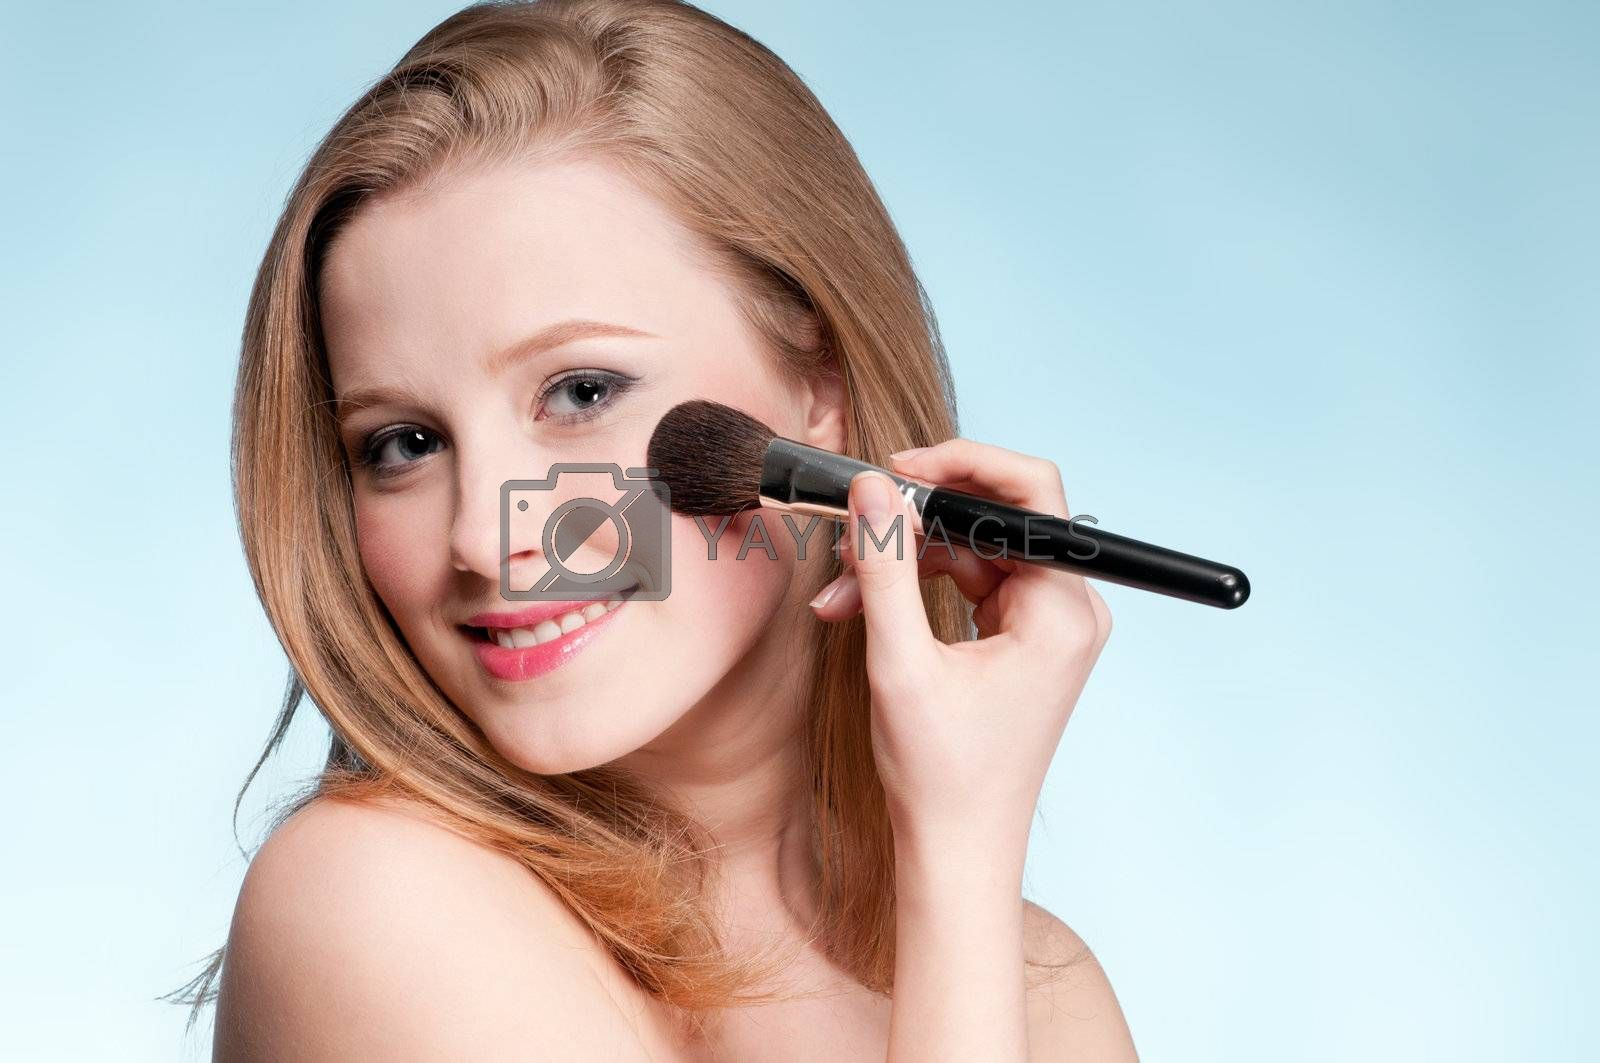 Beautiful young adult woman applying cosmetic paint brush - close-up portrait